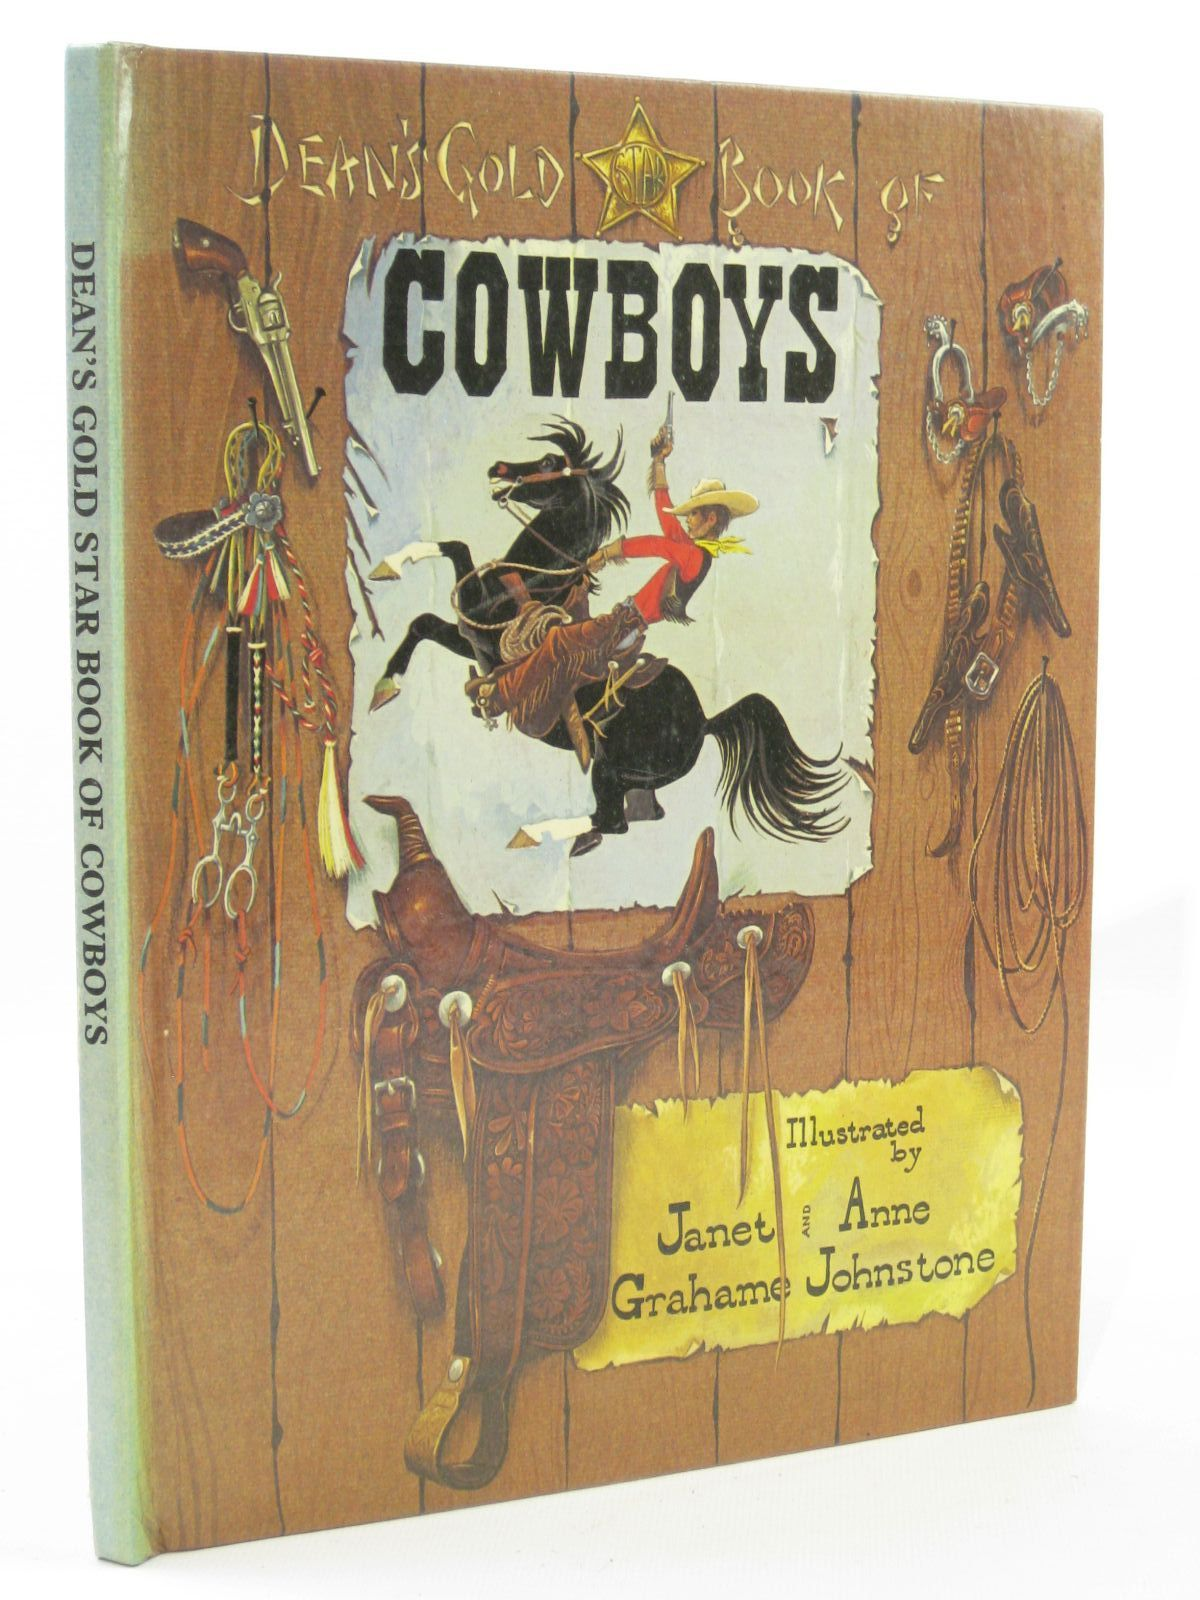 Photo of DEAN'S GOLD STAR BOOK OF COWBOYS written by Johnstone, Janet Grahame<br />Johnstone, Anne Grahame illustrated by Johnstone, Janet Grahame<br />Johnstone, Anne Grahame published by Dean & Son Ltd. (STOCK CODE: 1507635)  for sale by Stella & Rose's Books